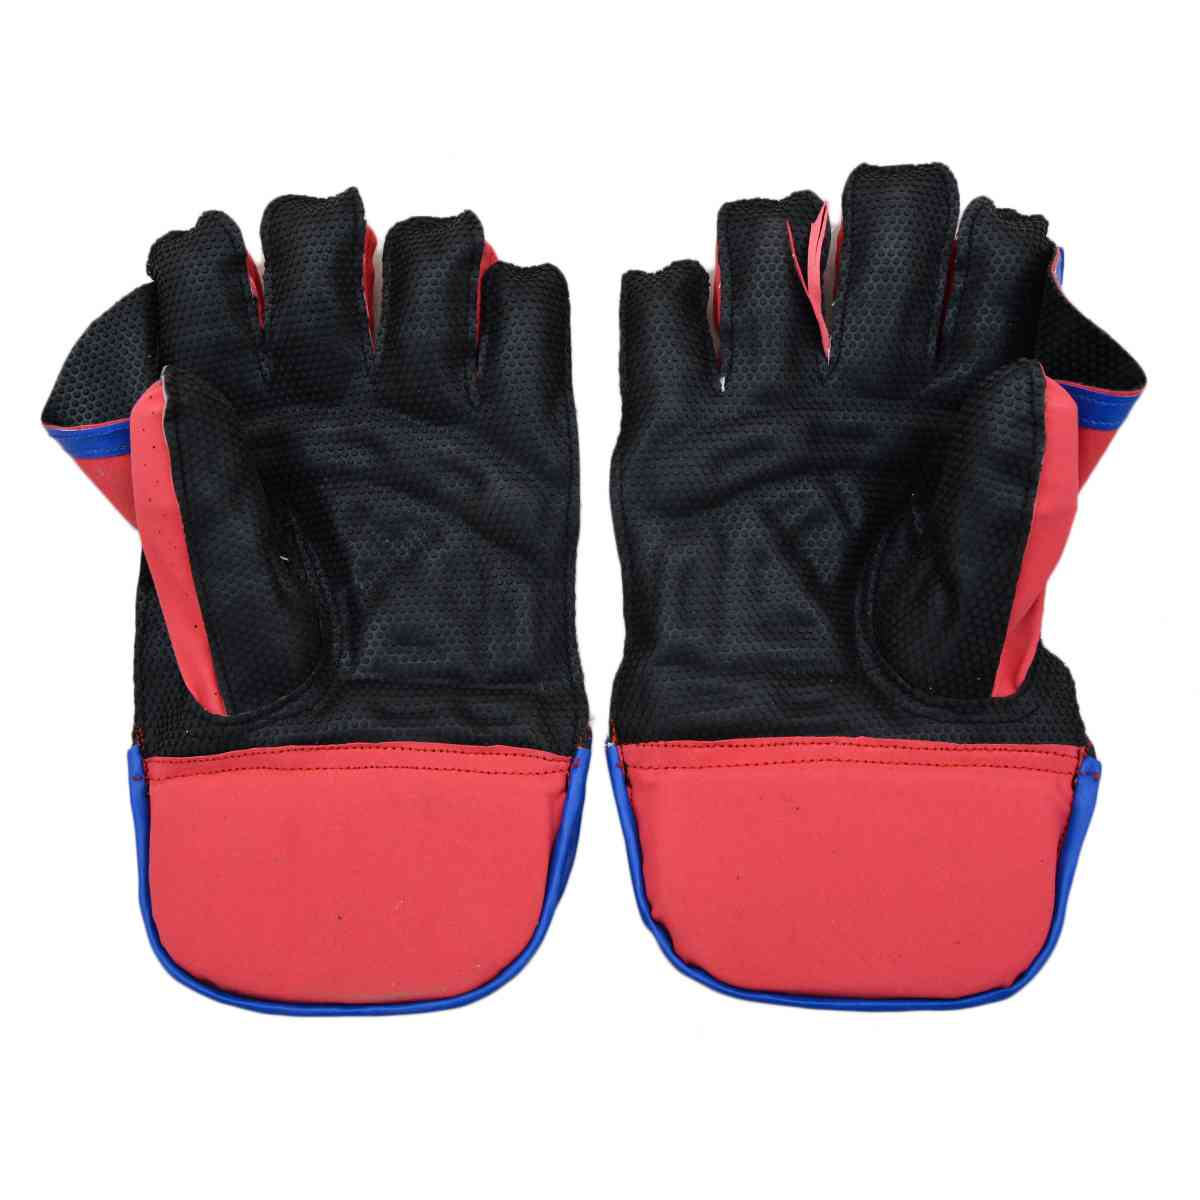 2 Pcs GM Football Goal Keeper Gloves - Red